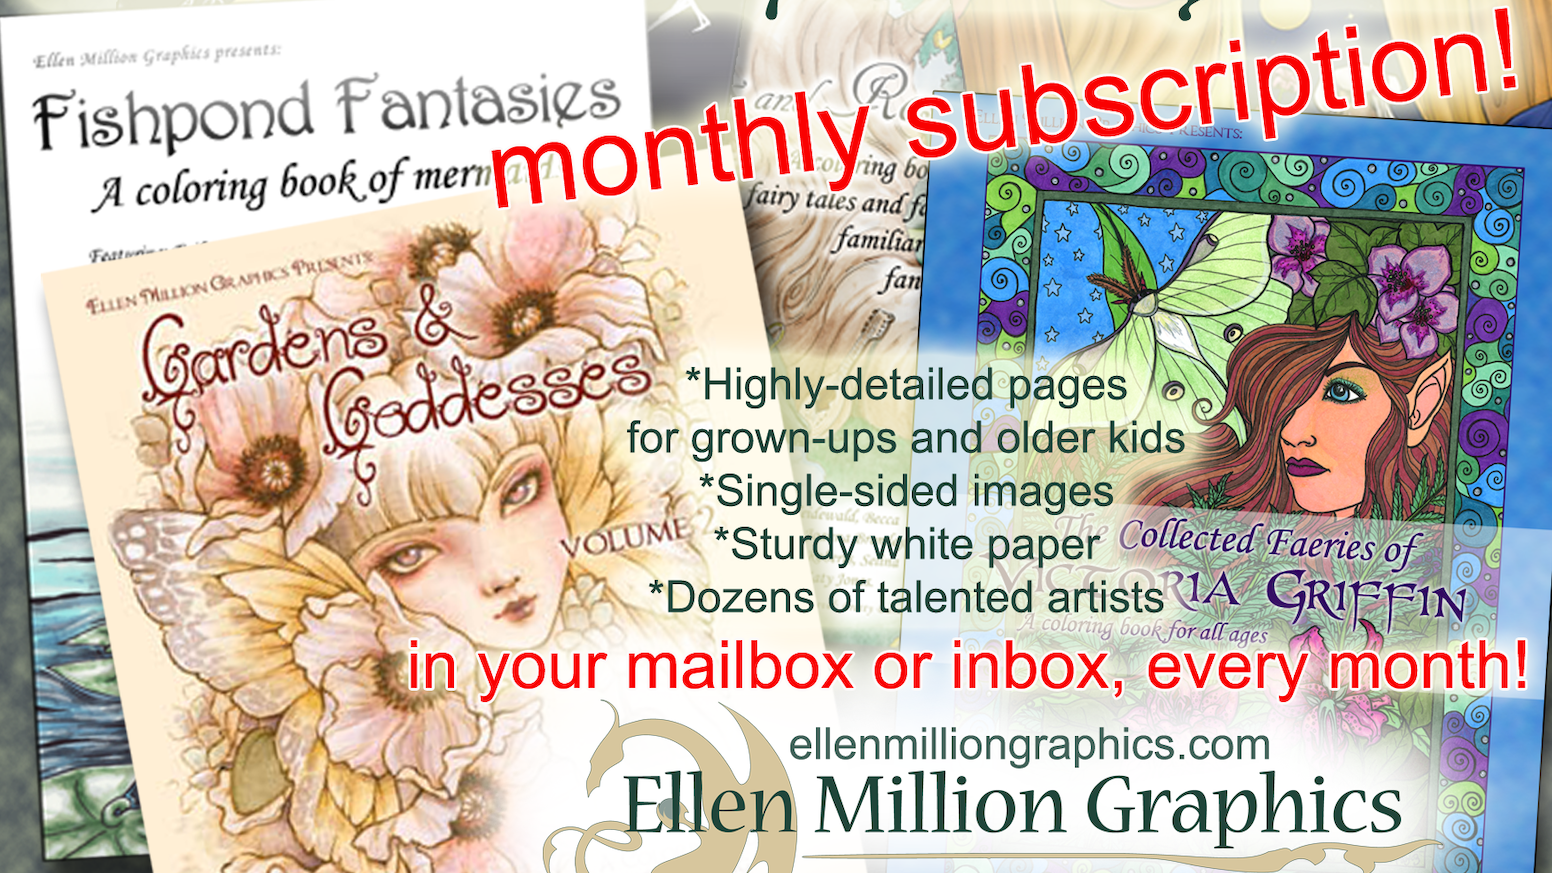 A one-year subscription service for people who love to color, with highly detailed fantasy illustrations. PDF and hardcopy available!